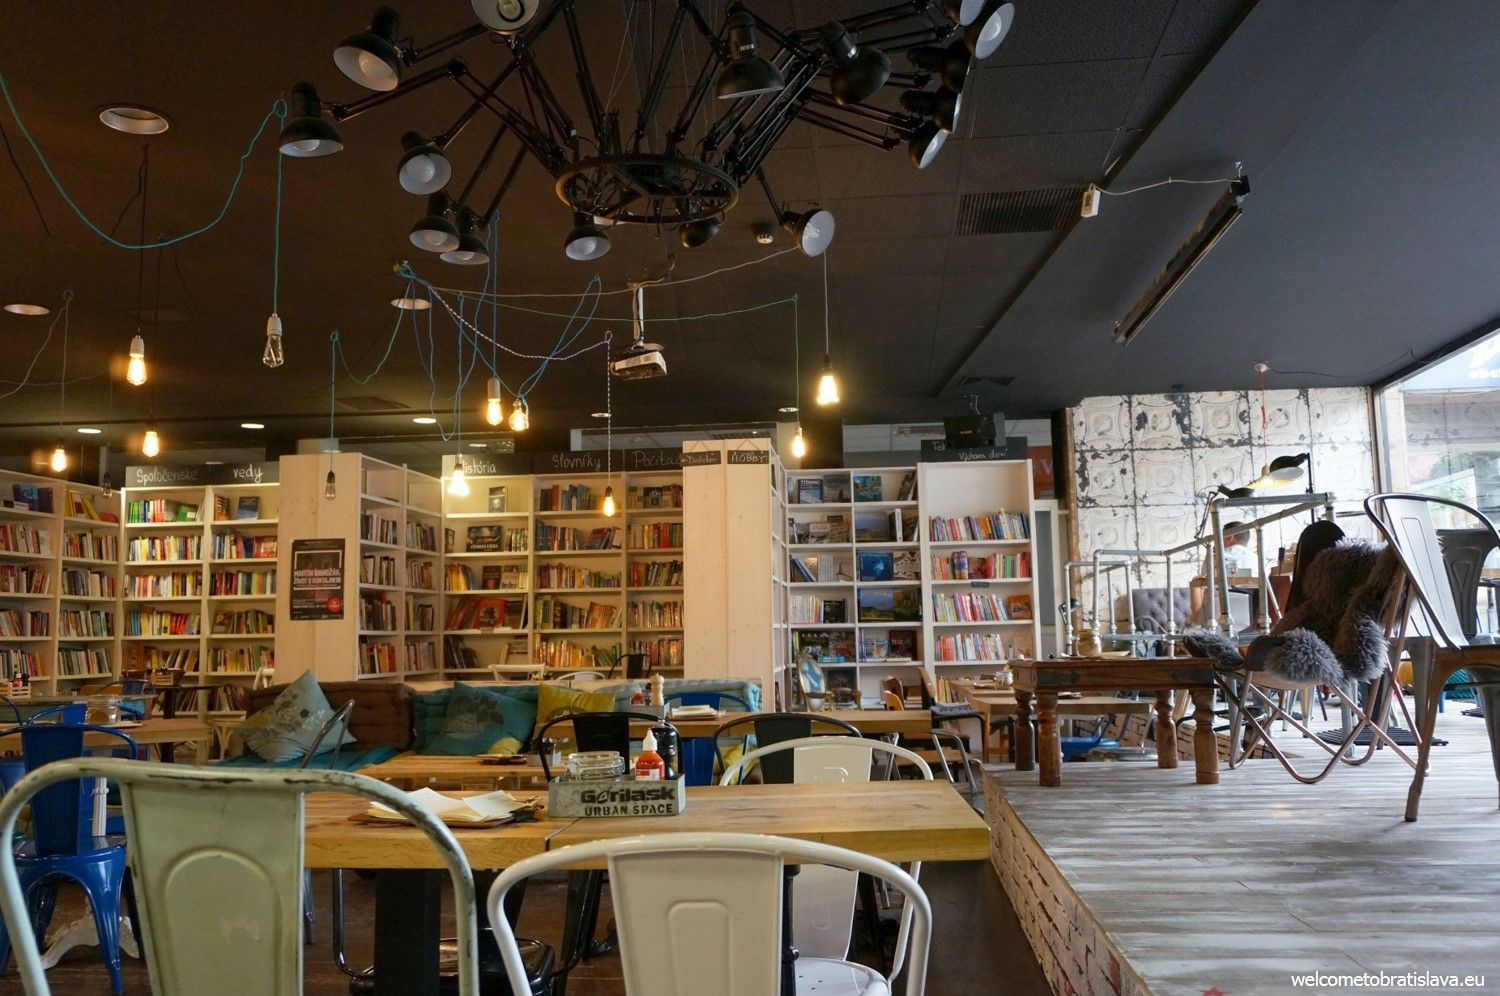 Urban Space actually serves as a book store